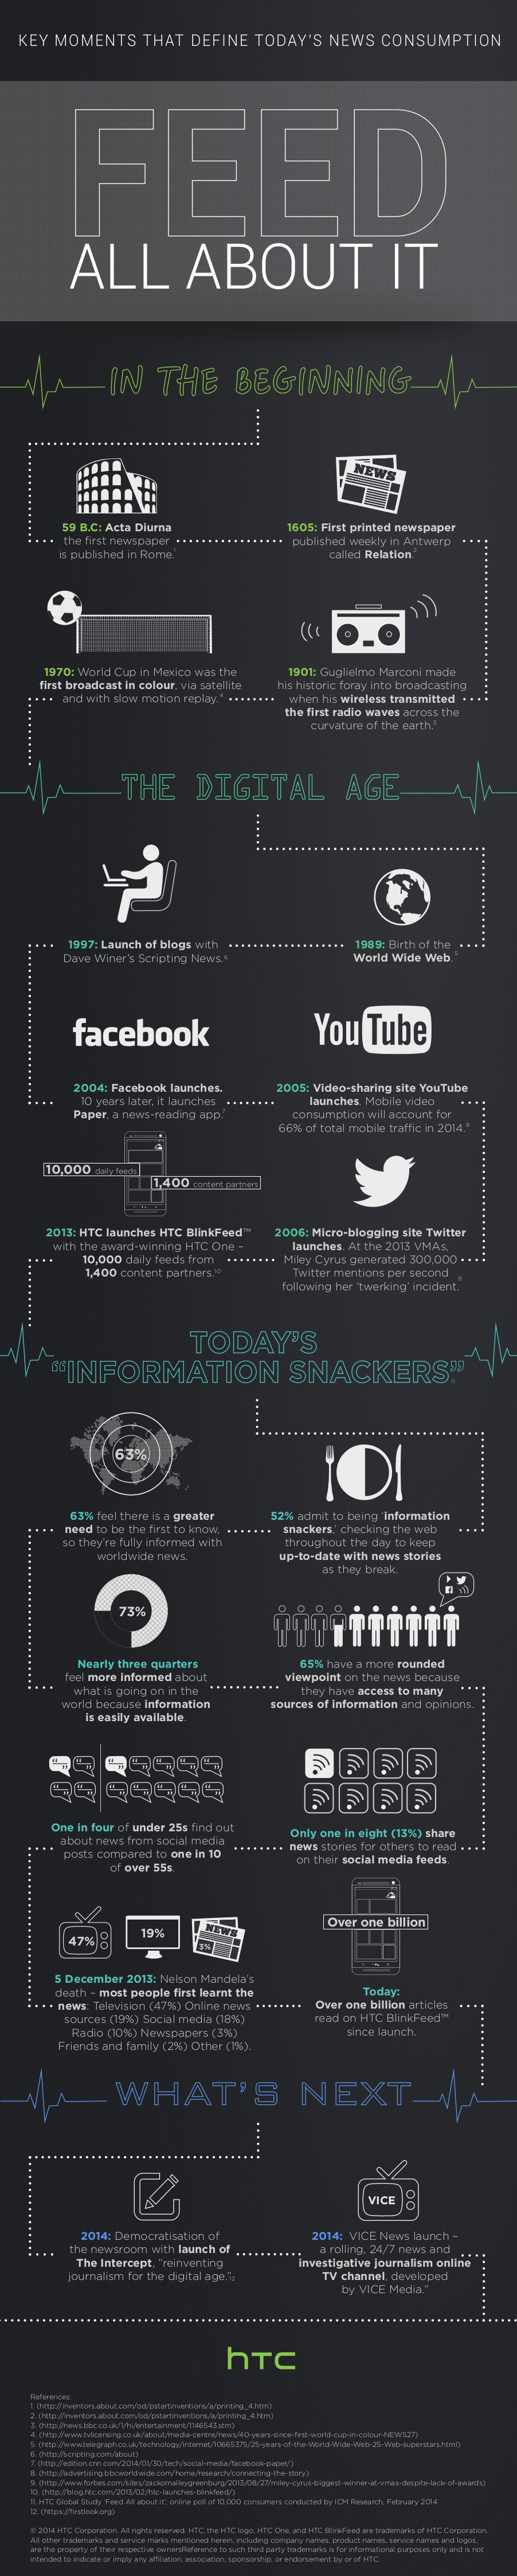 HTC news infographic